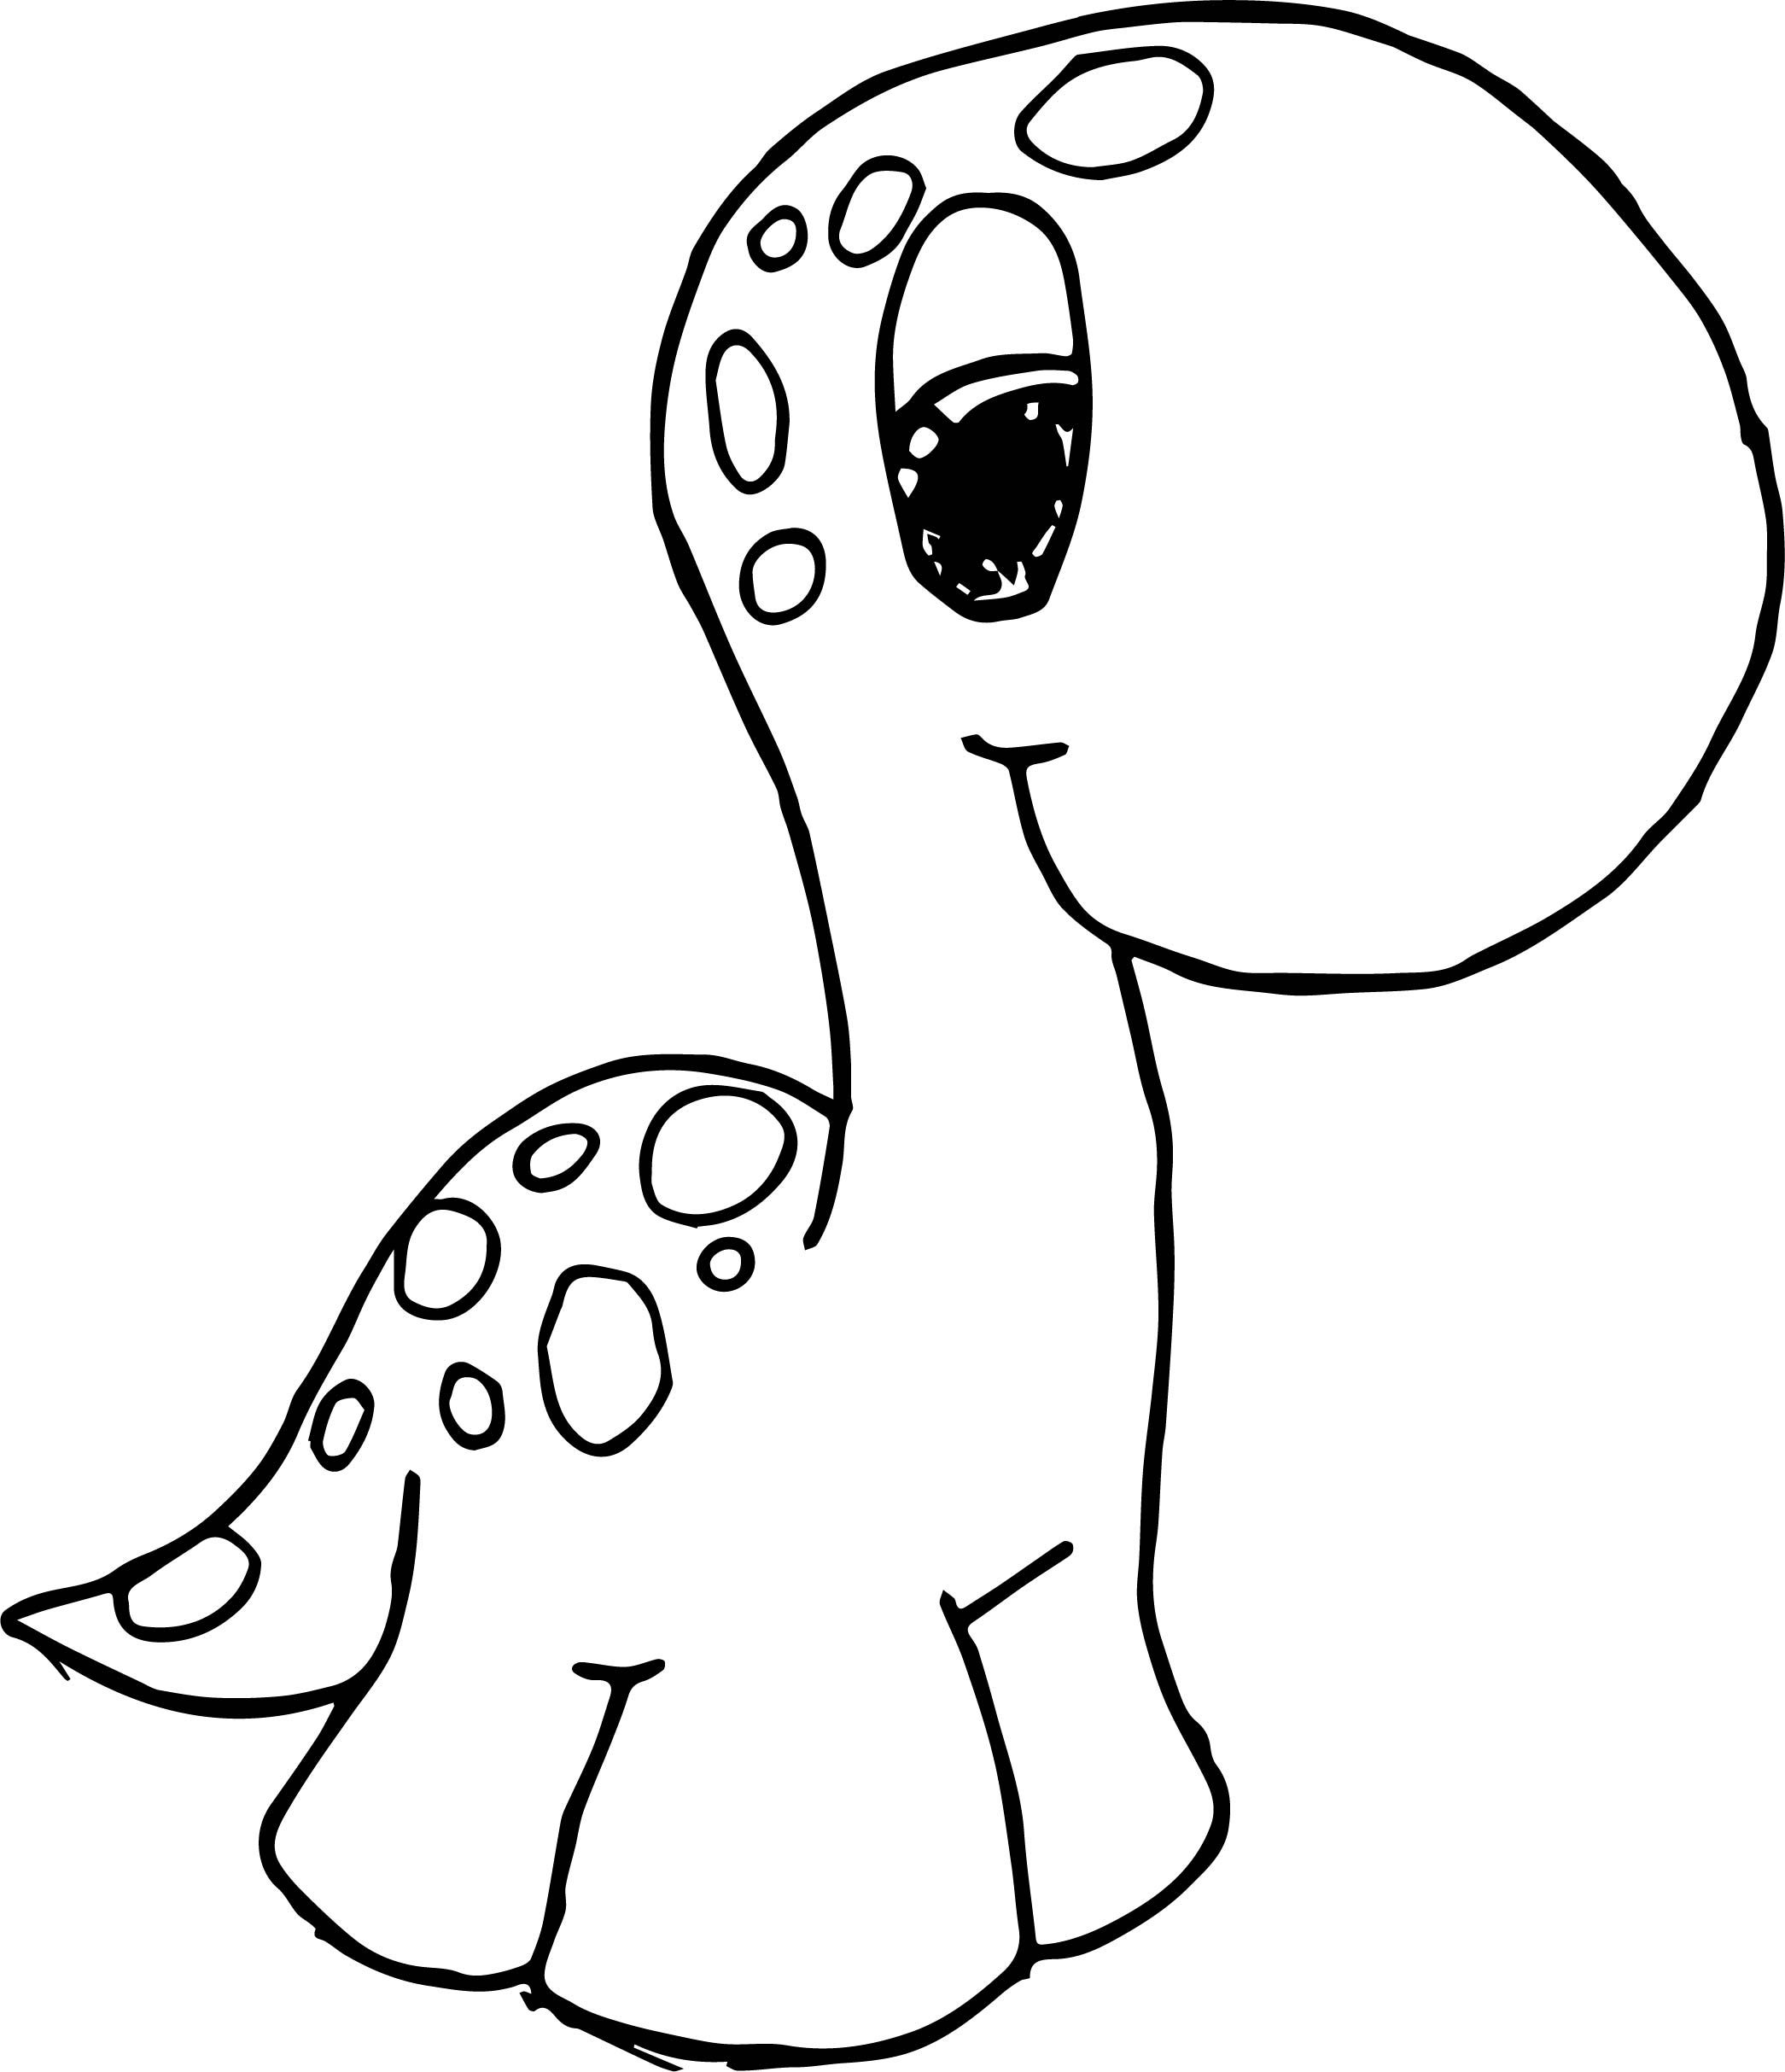 cool Cute Dinosaurs Go Coloring Page (With images) | Cute ...